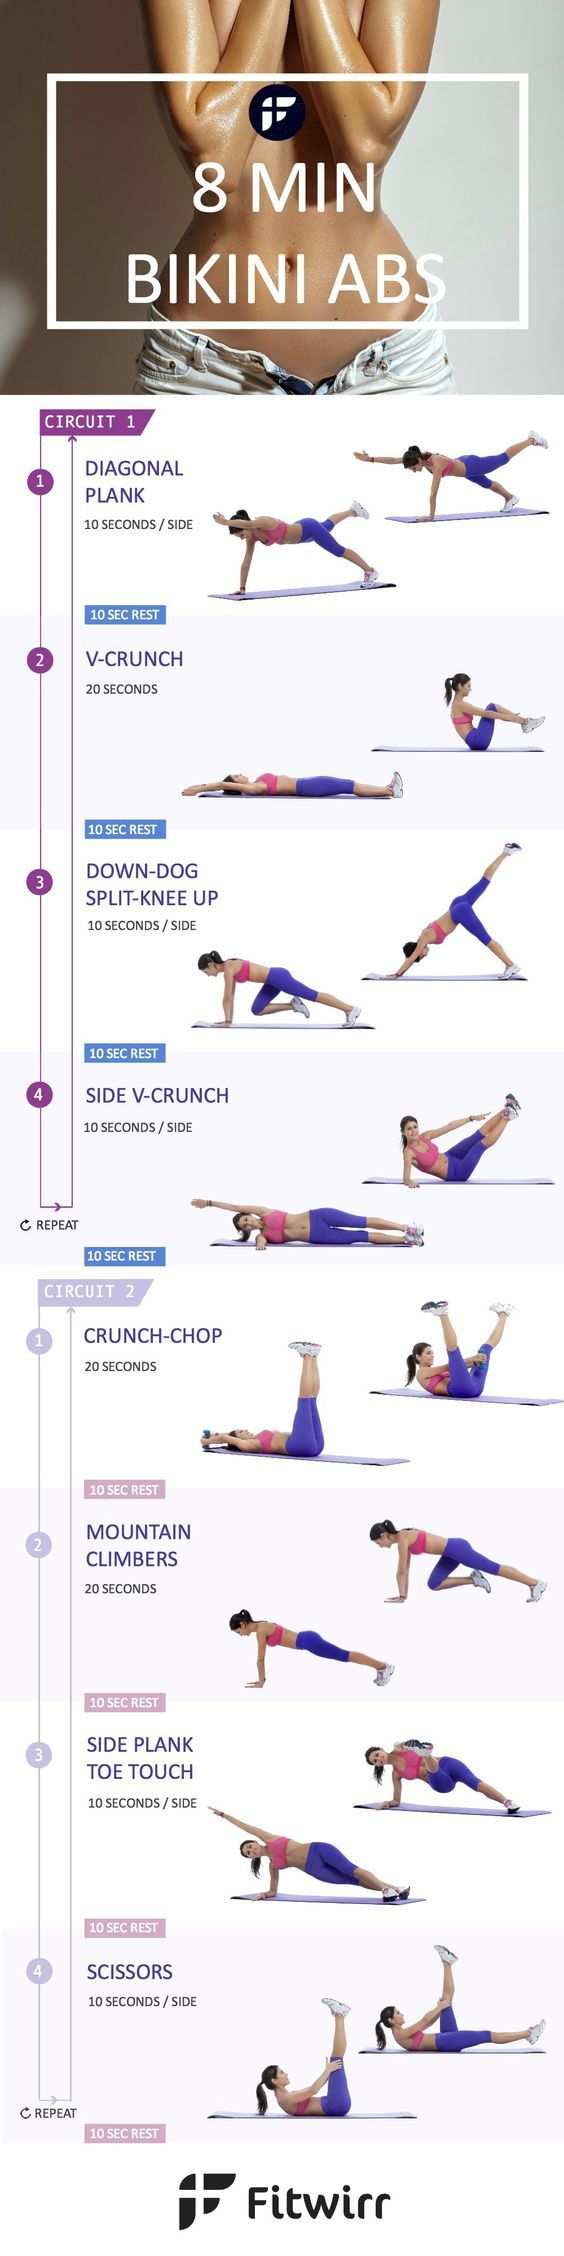 How to Lose Belly Fat Quick with 8 Minute Bikini Ab Workout Like what you see? Take a look at the great fitness, health and